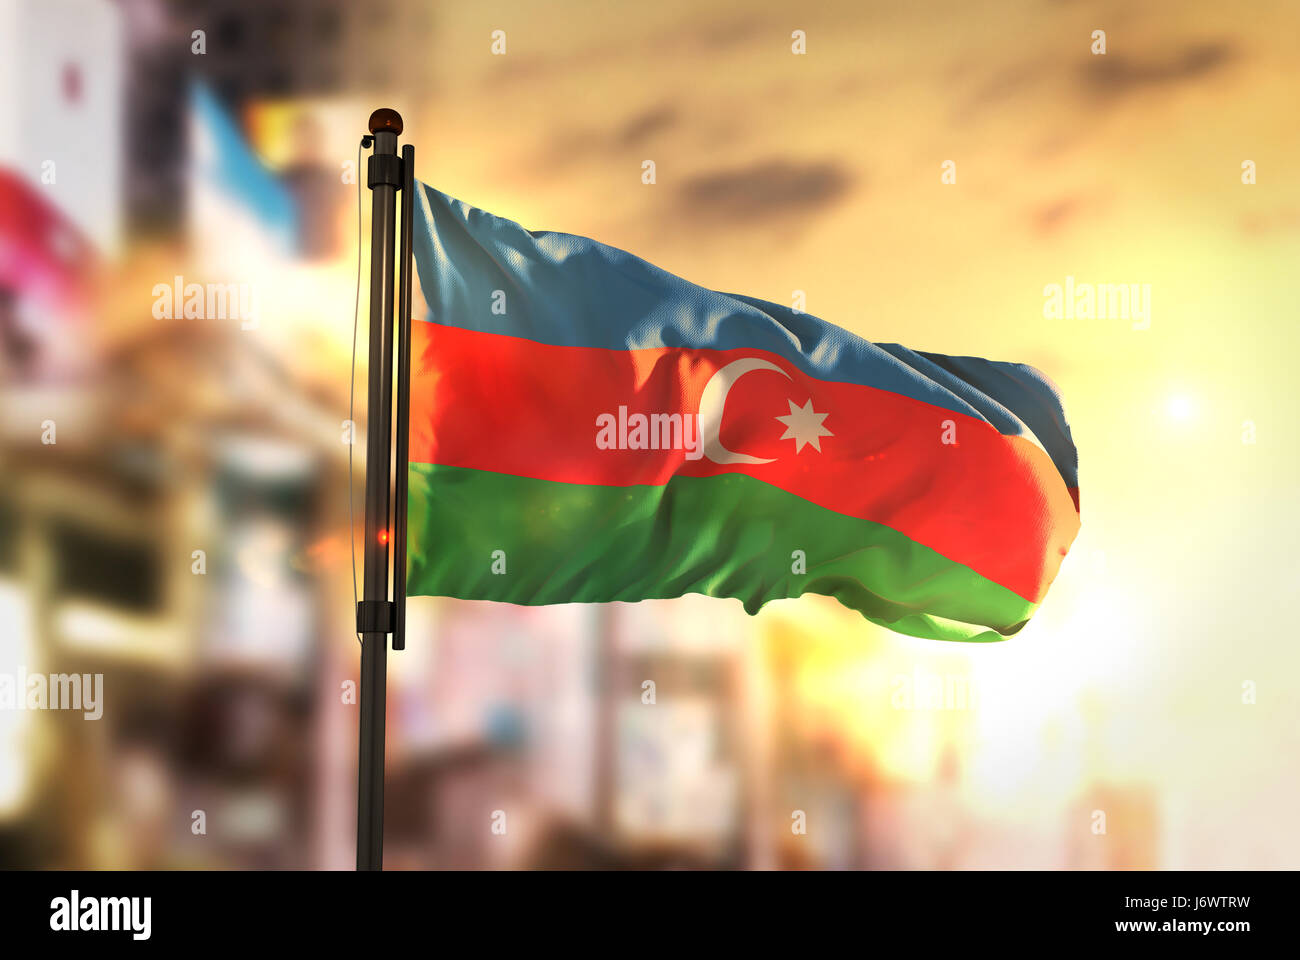 Azerbaijan Flag Against City Blurred Background At Sunrise Backlight - Stock Image